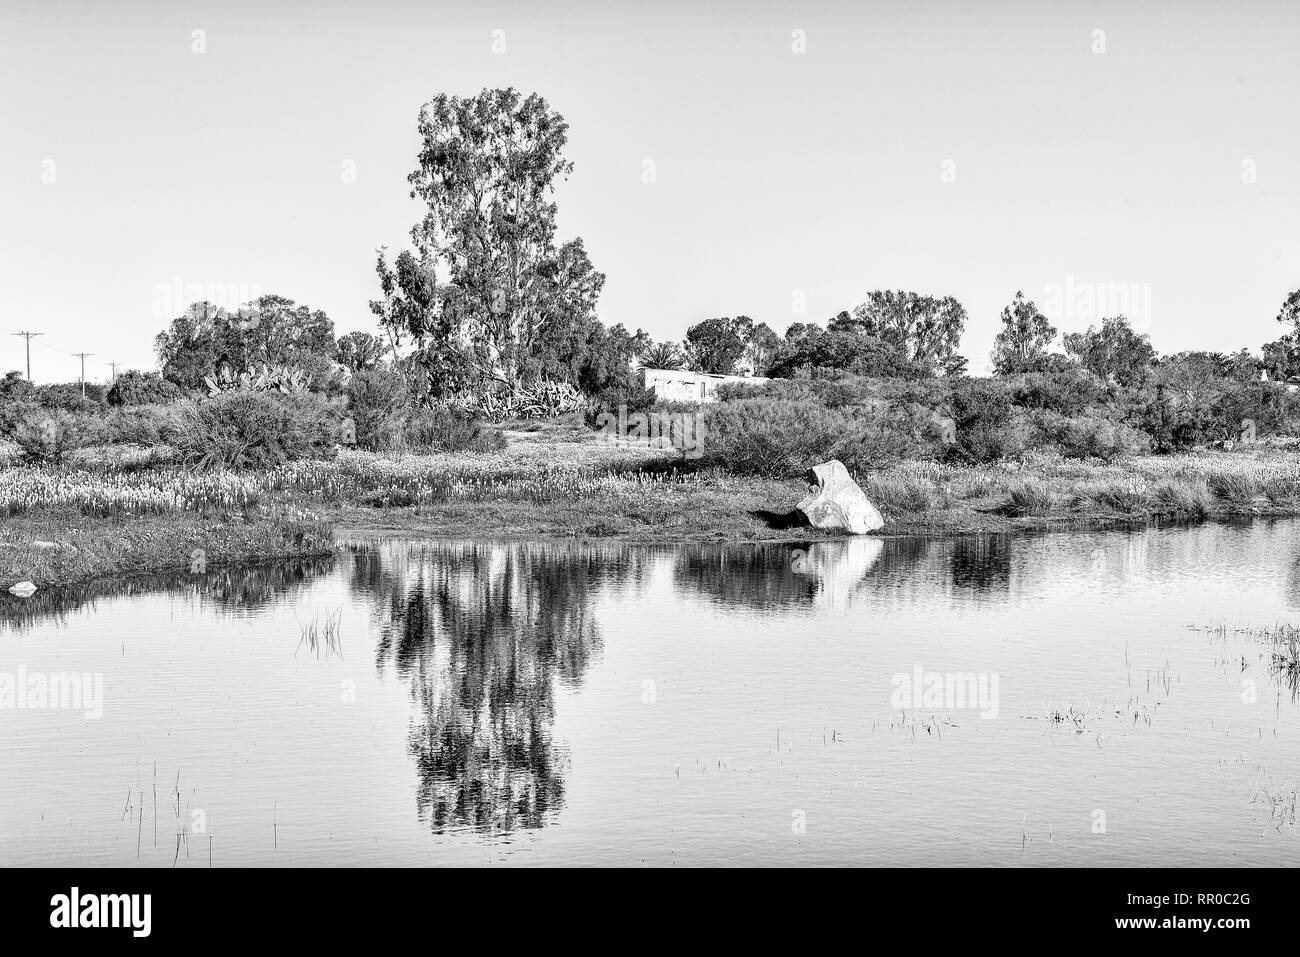 Reflections in a pond at Willemsrivier in the Northern Cape Province. Monochrome - Stock Image